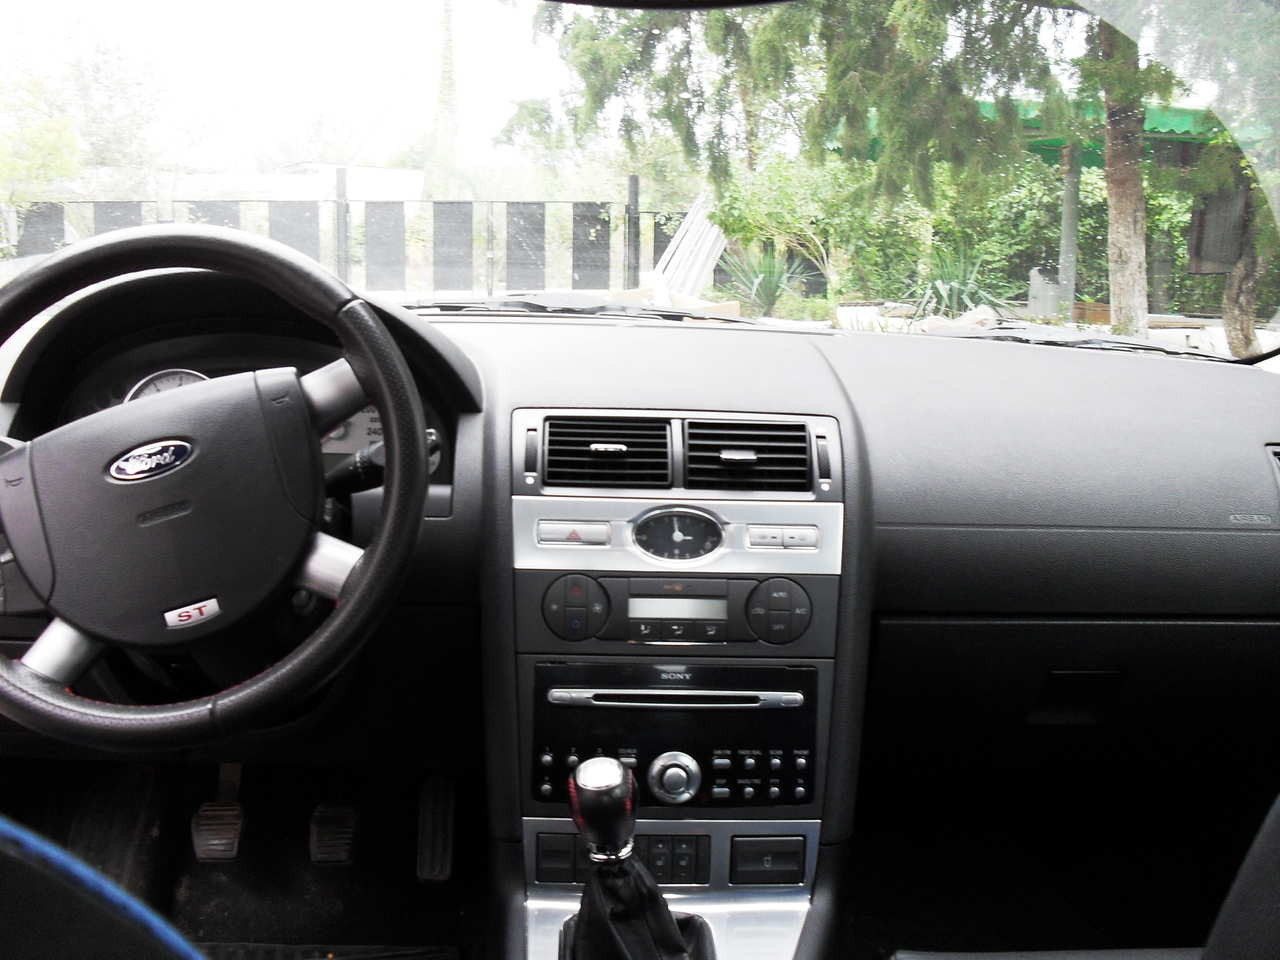 2005 Ford Mondeo #12